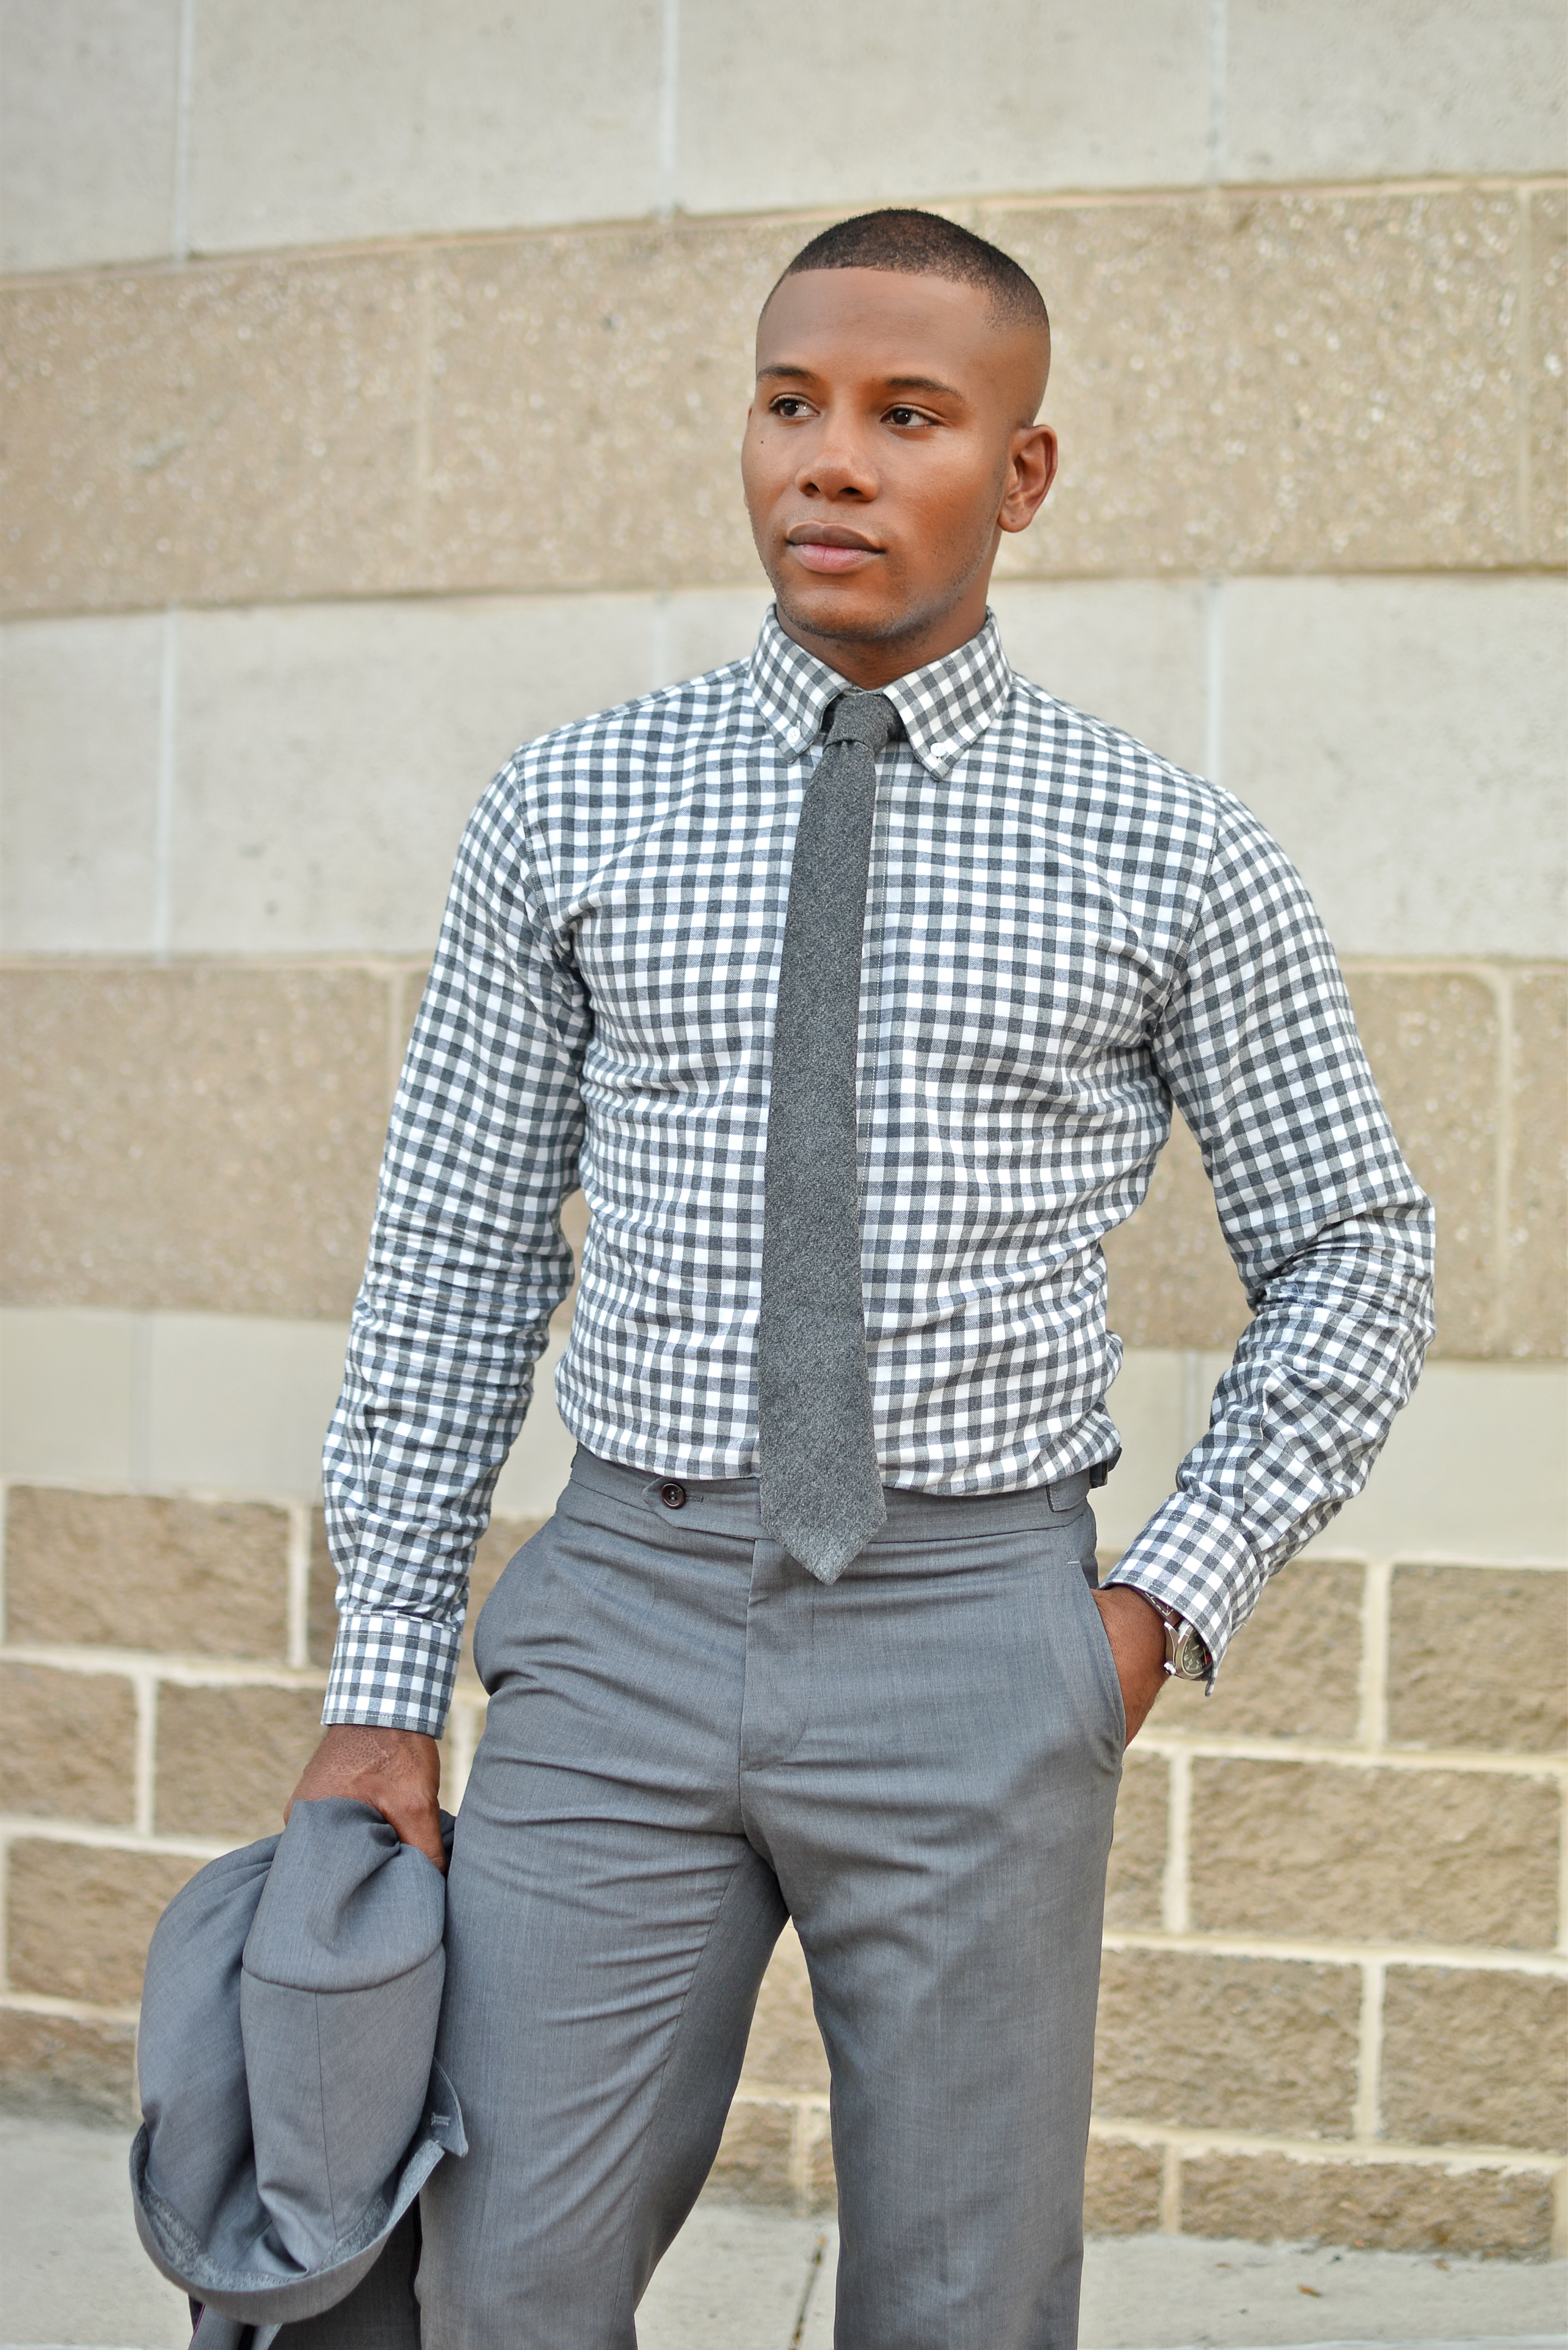 Men's Style Pro x Oliver Wicks Shirt Collaboration